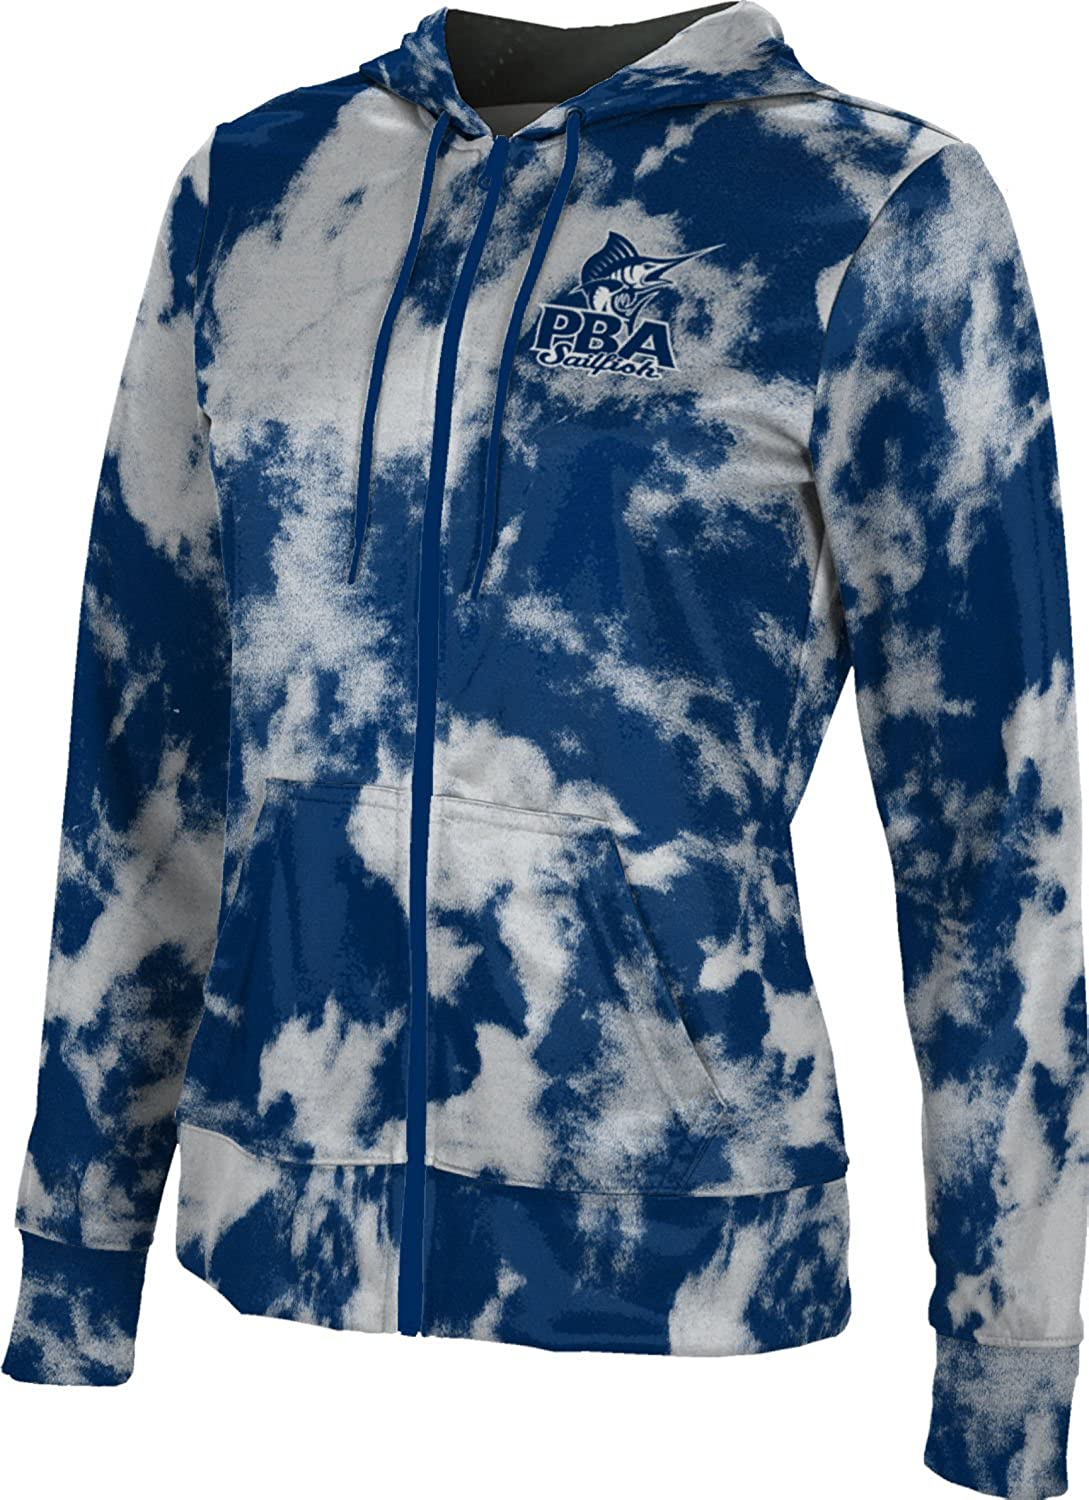 School Spirit Sweatshirt Palm Beach Atlantic University Girls Zipper Hoodie Grunge